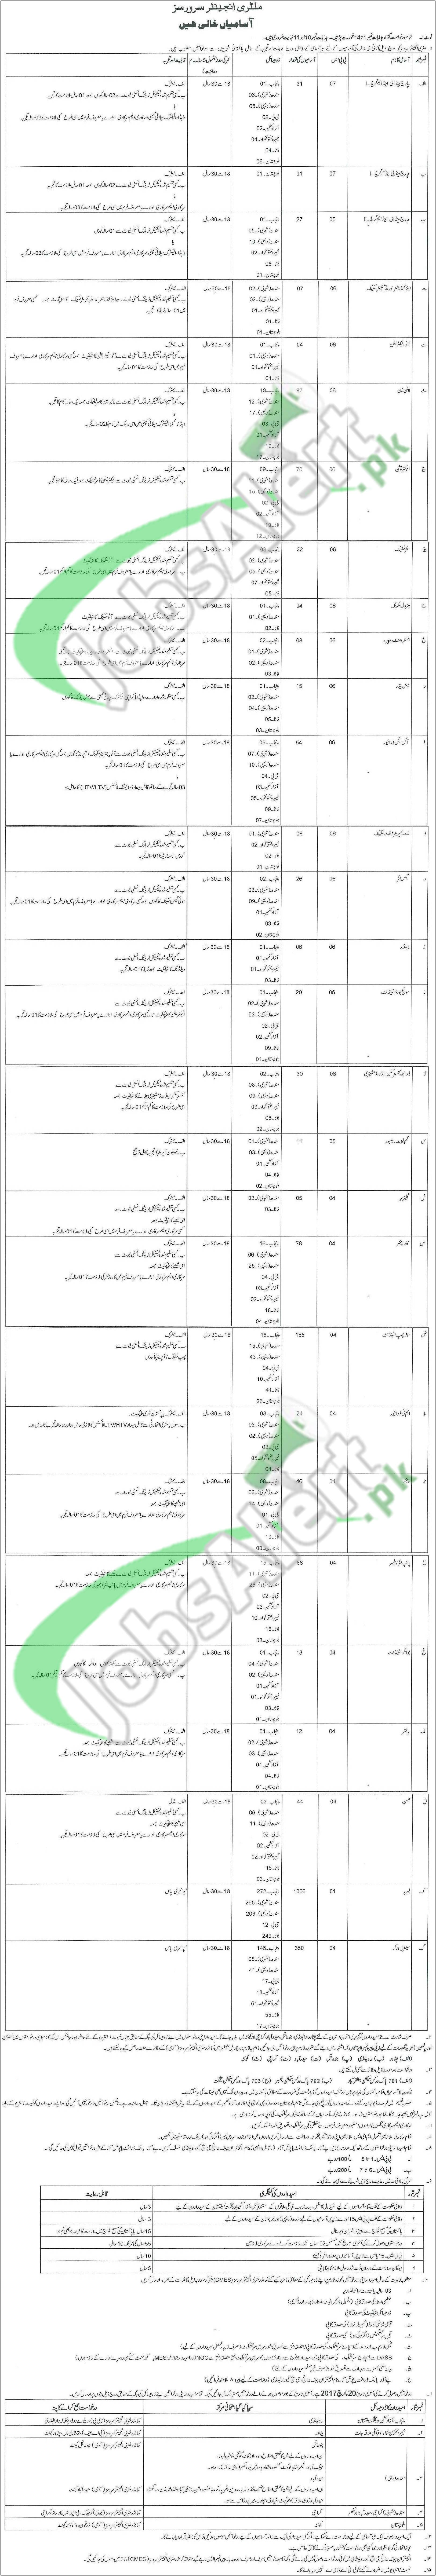 mes gov pk jobs 2017 application form online latest vacancies type in google search mes jobs